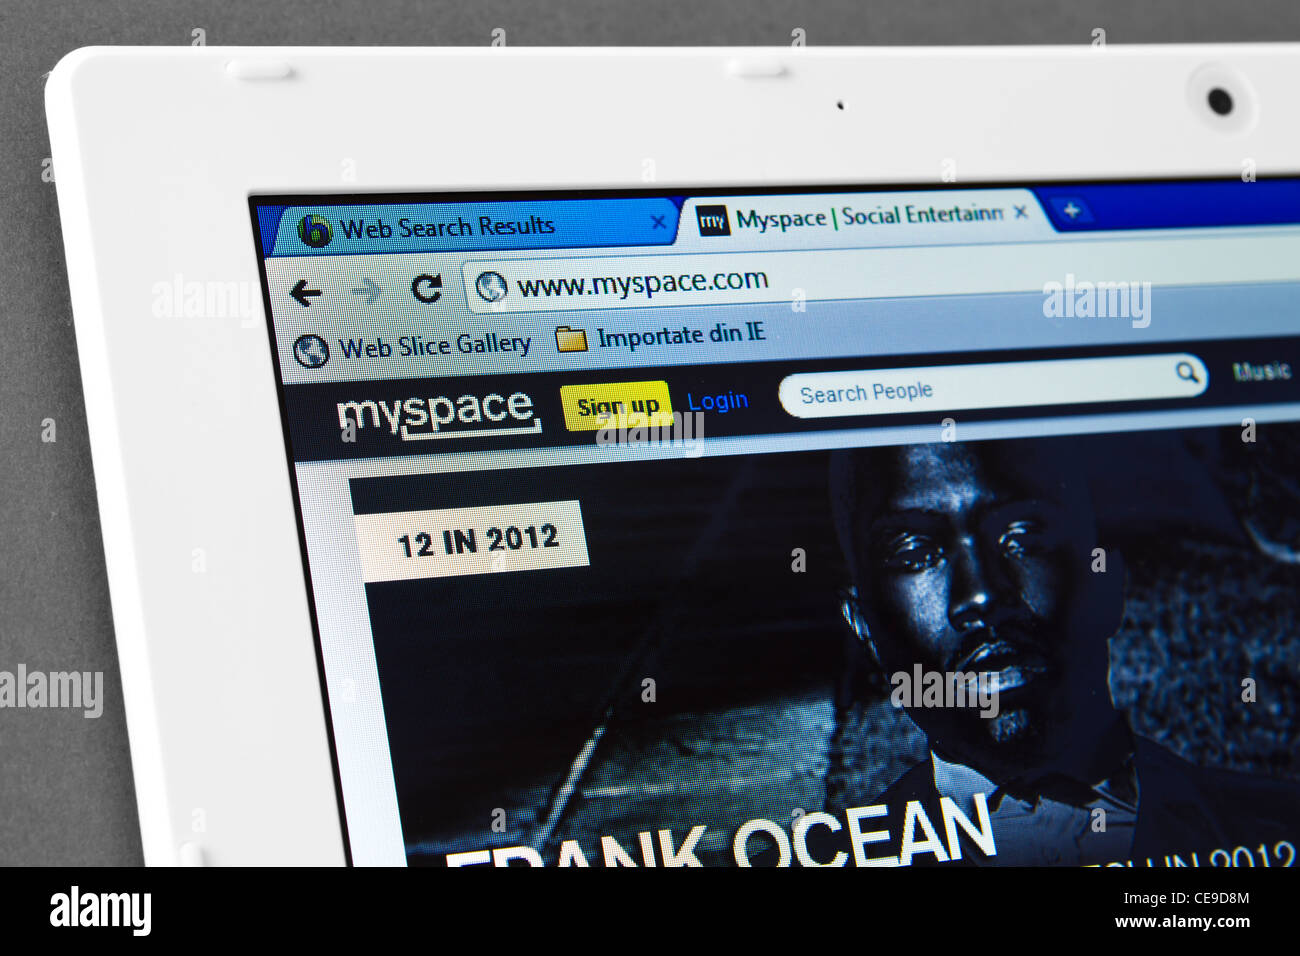 MySpace web page on the browser - Stock Image